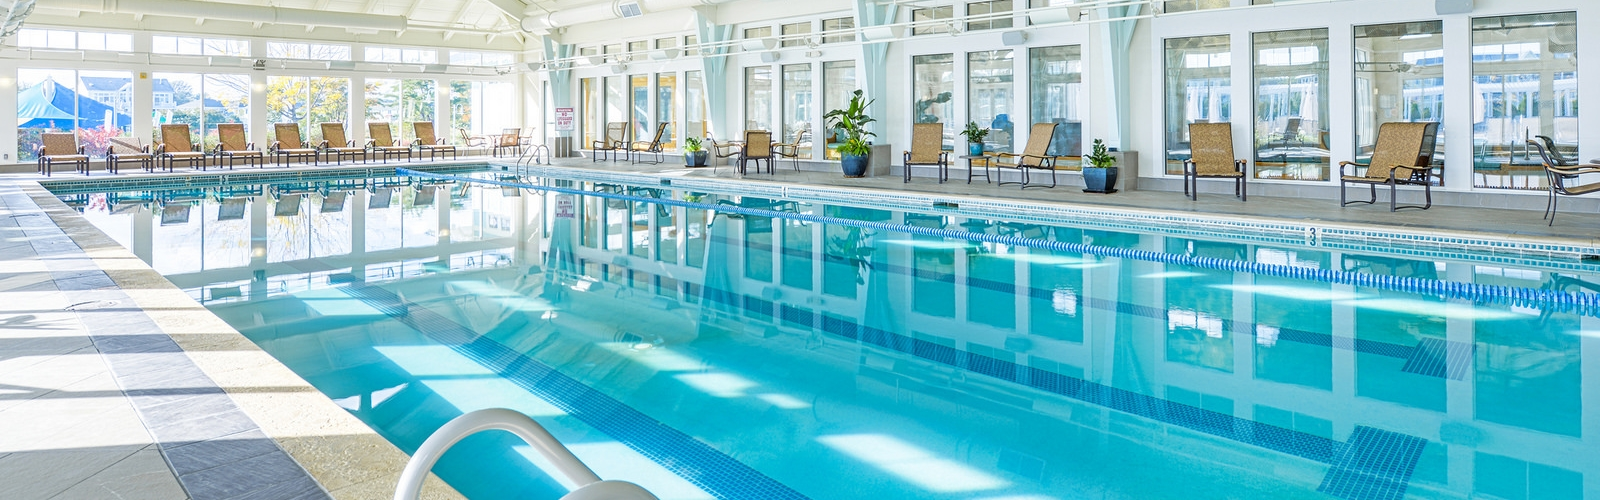 Pool Gym Rules Regulations Peninsula Golf Country Club